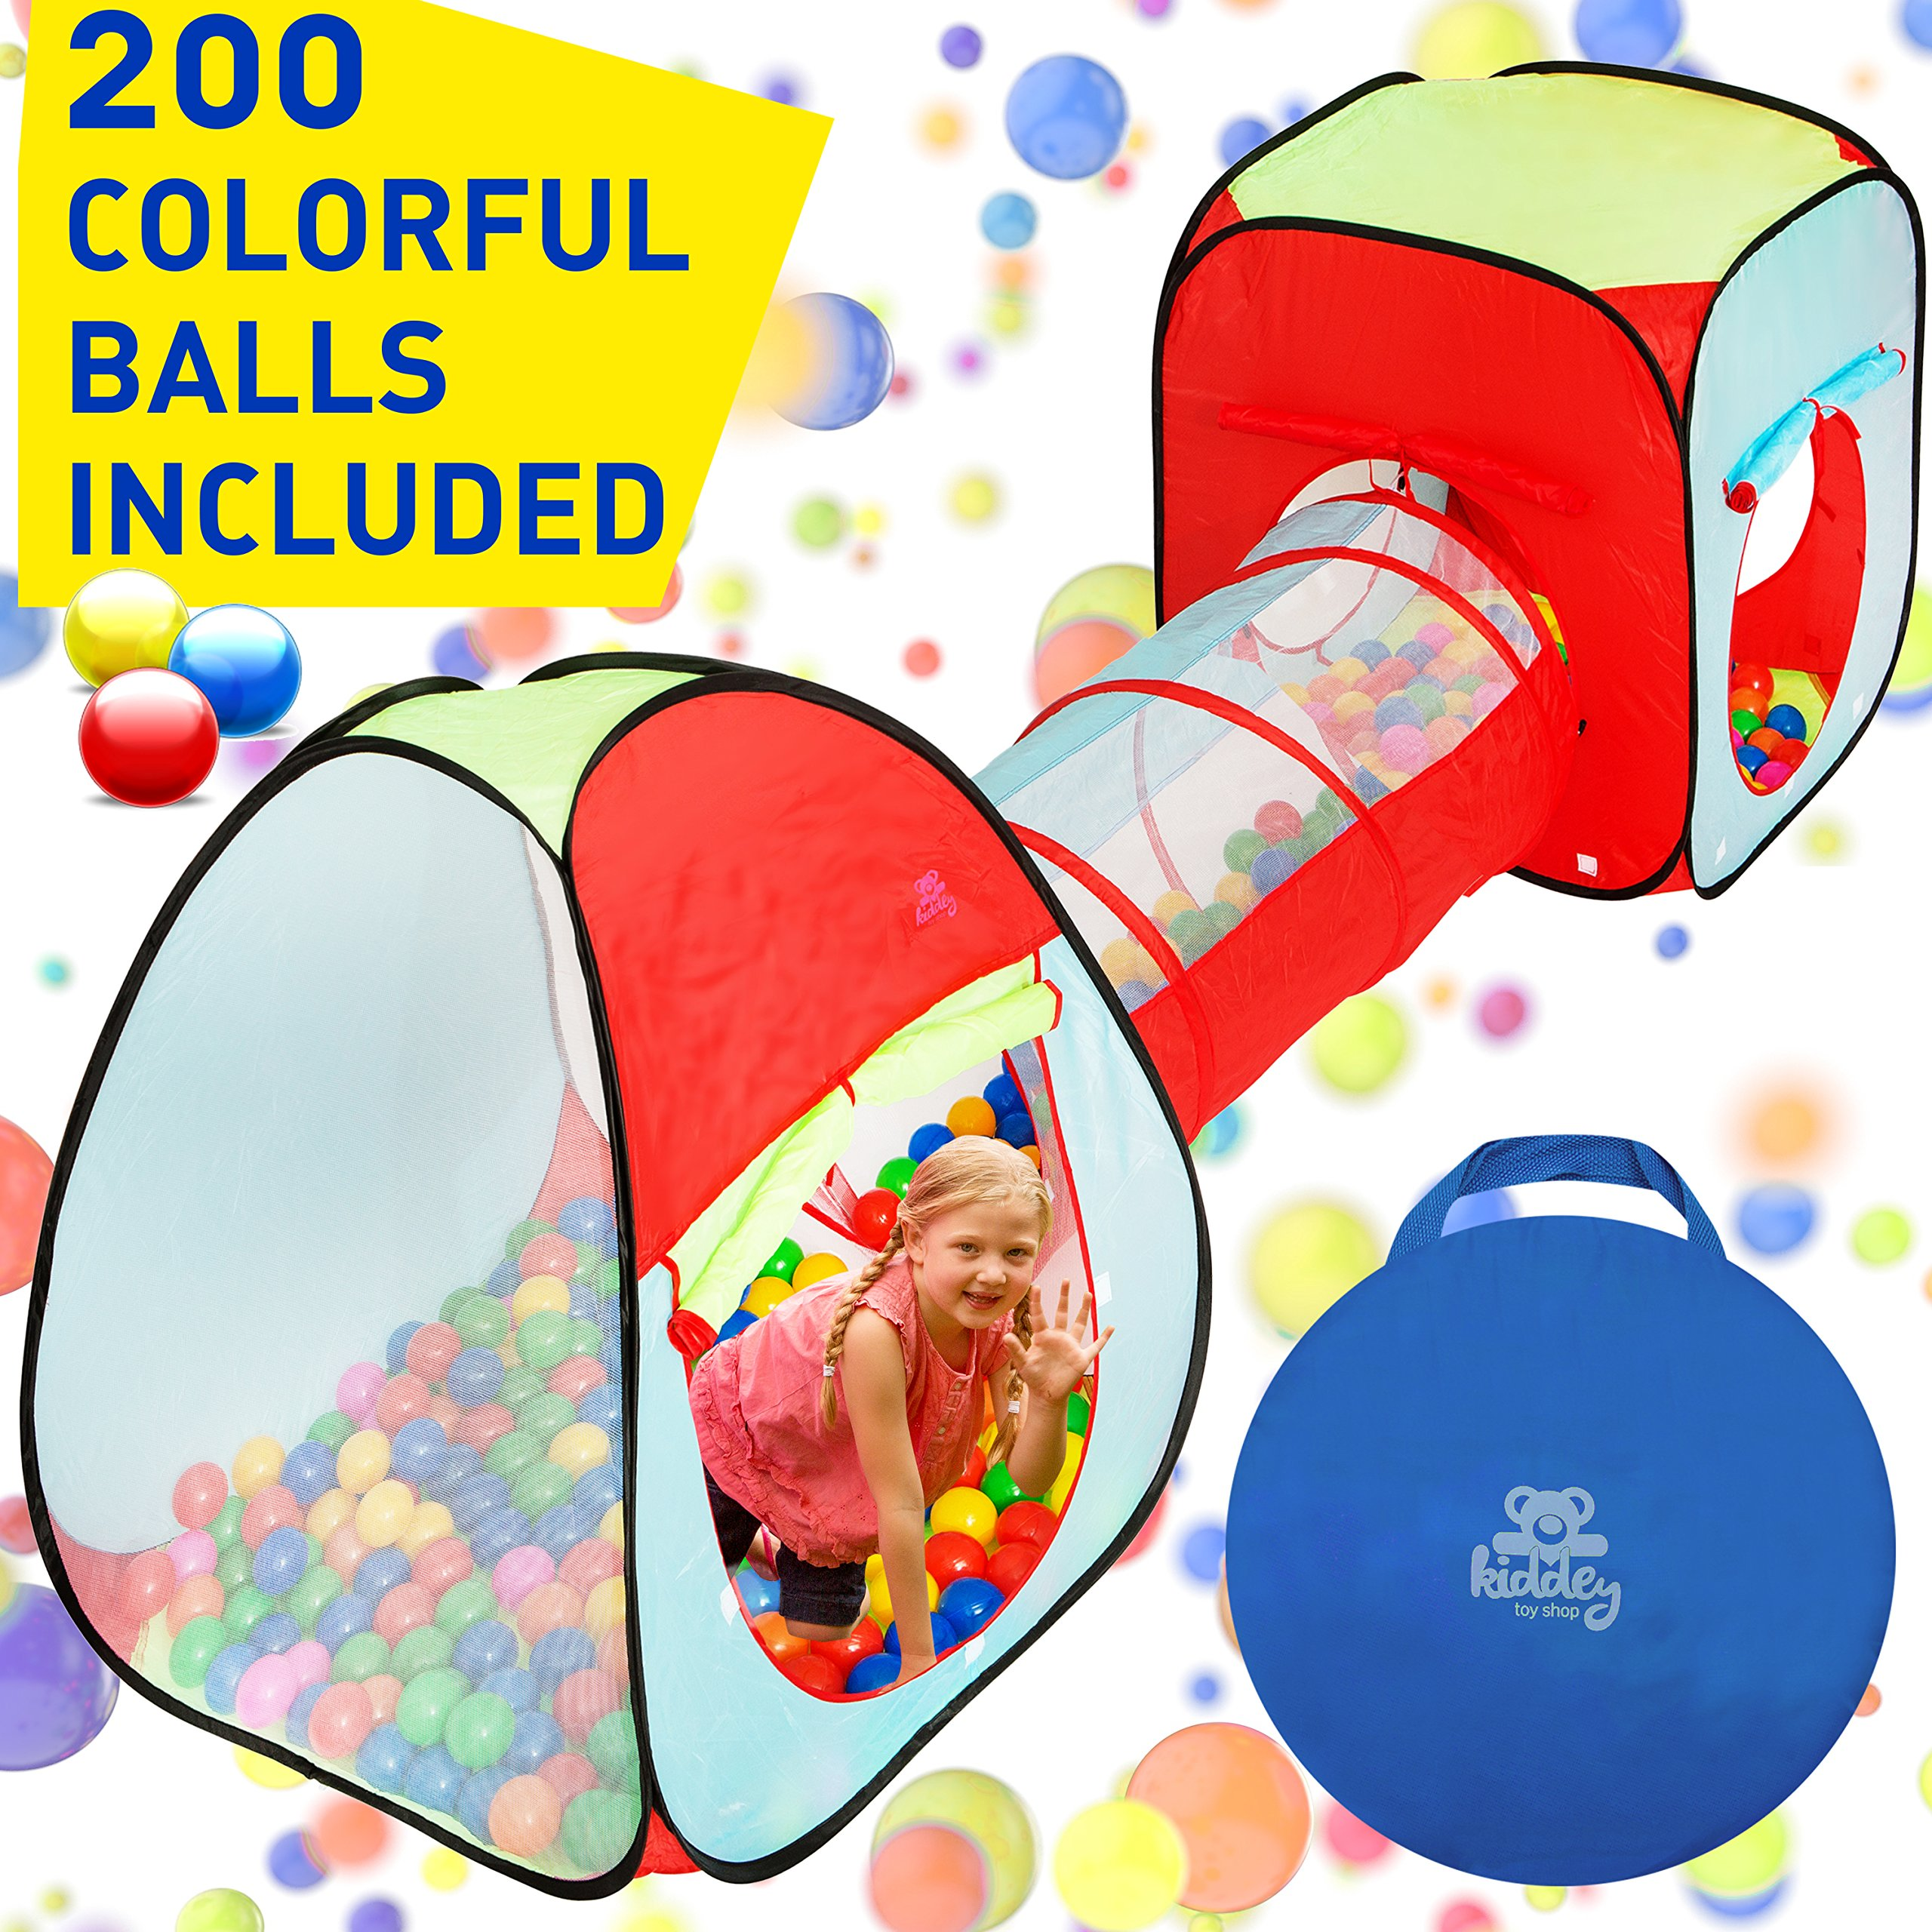 Kiddey 3pc. Kids Ball Pit With 200 Balls, See Through Play Tent Tunnel Set- Crush Proof Balls - Great Gift for Boys & Girls, Toddlers & Babies - Indoor/Outdoor, Carrying Case for Balls and Ball Pit by Kiddey (Image #1)